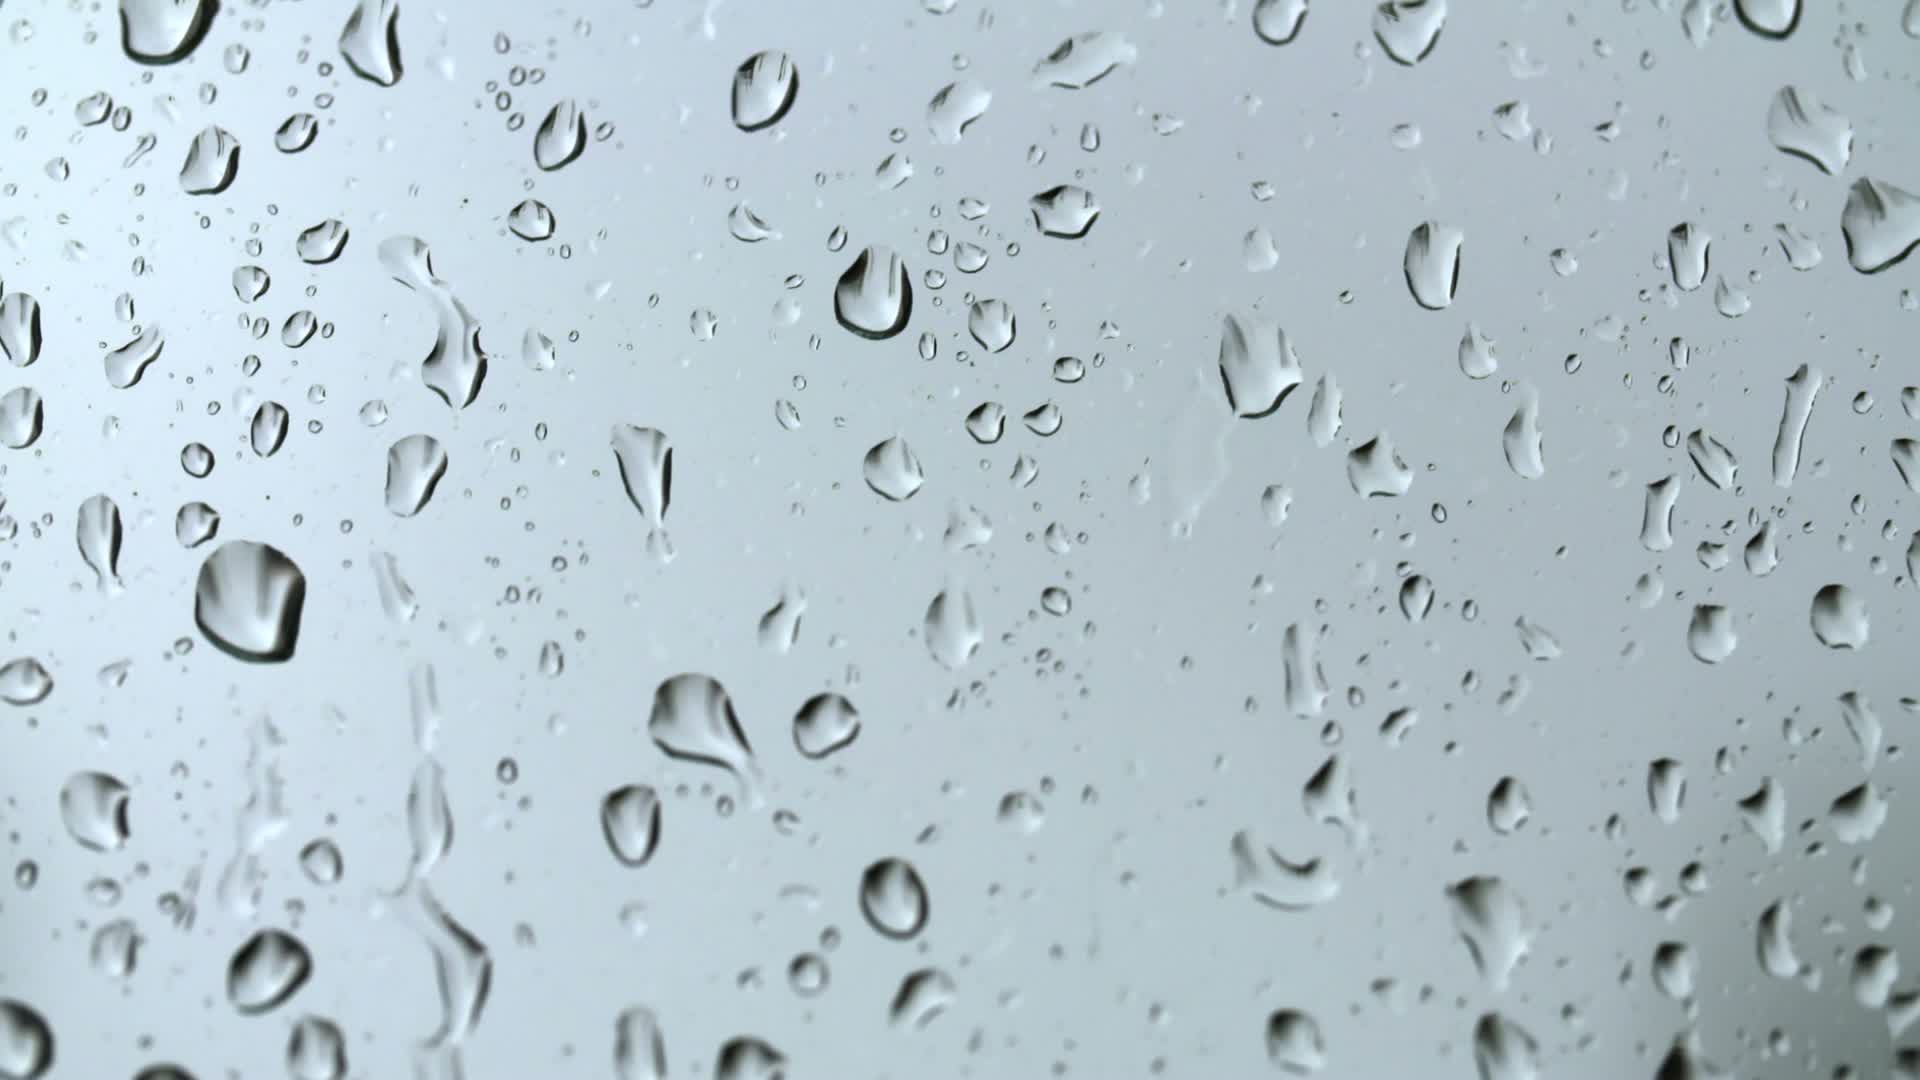 raindrop background 183��